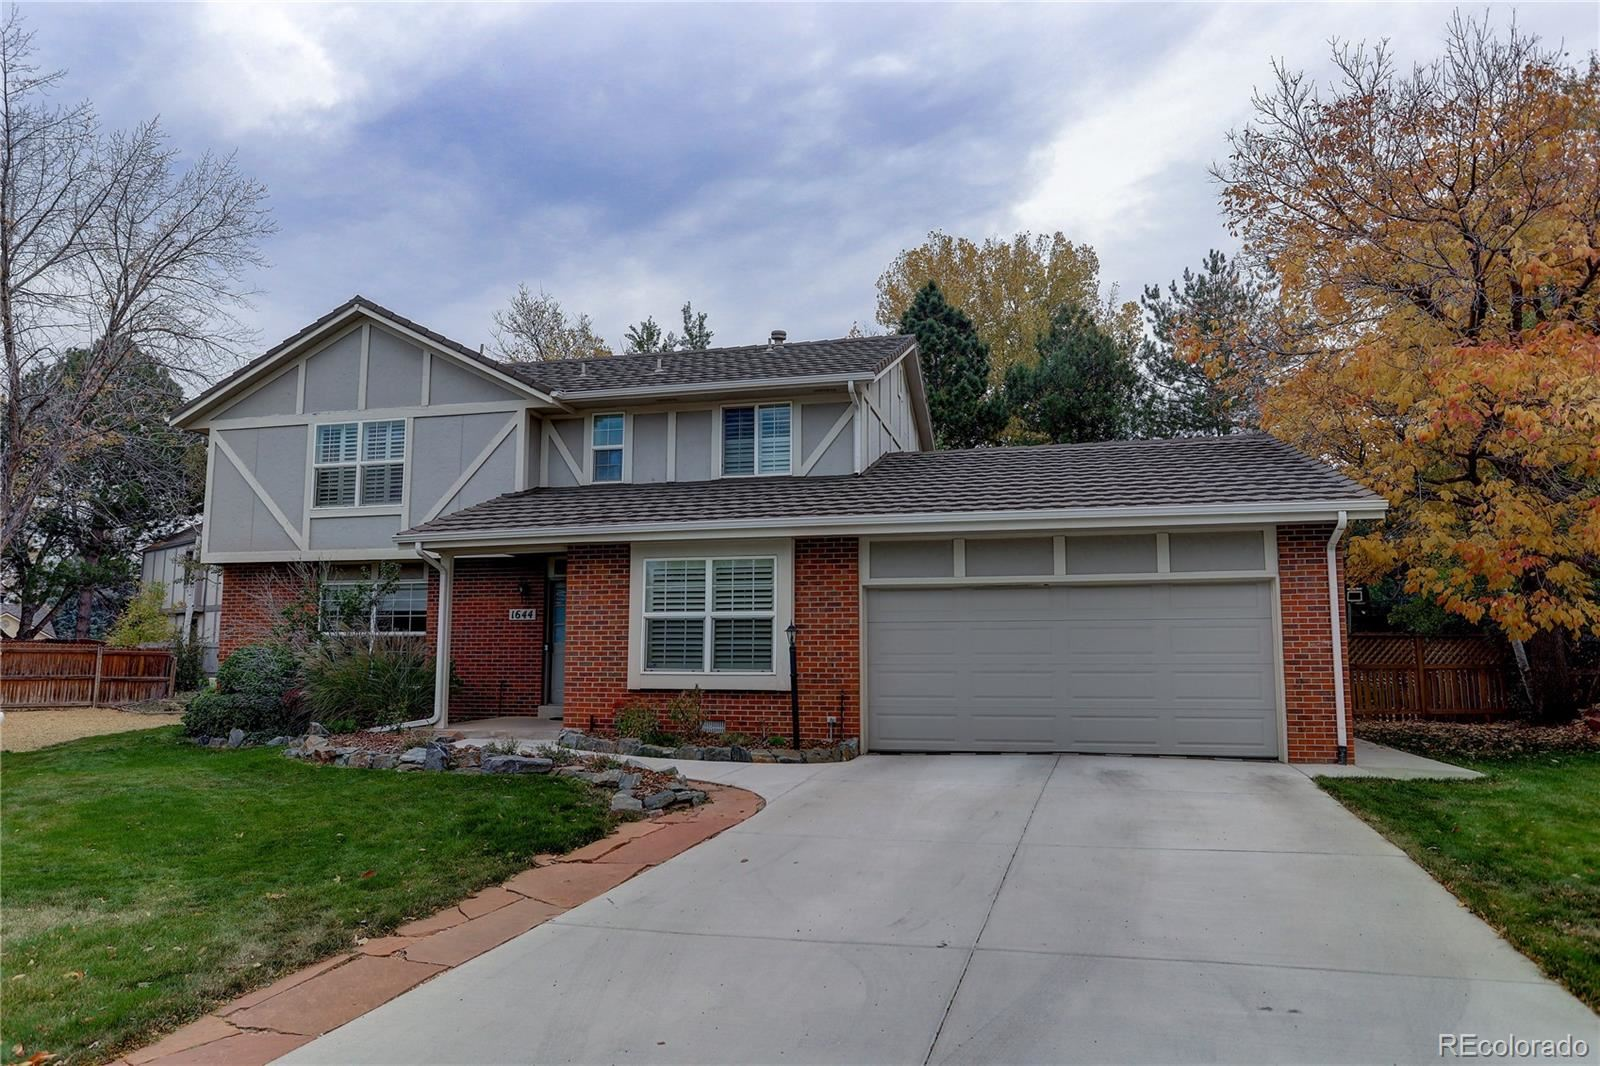 1644 W 113th Avenue, Westminster, CO 80234 - #: 1724195